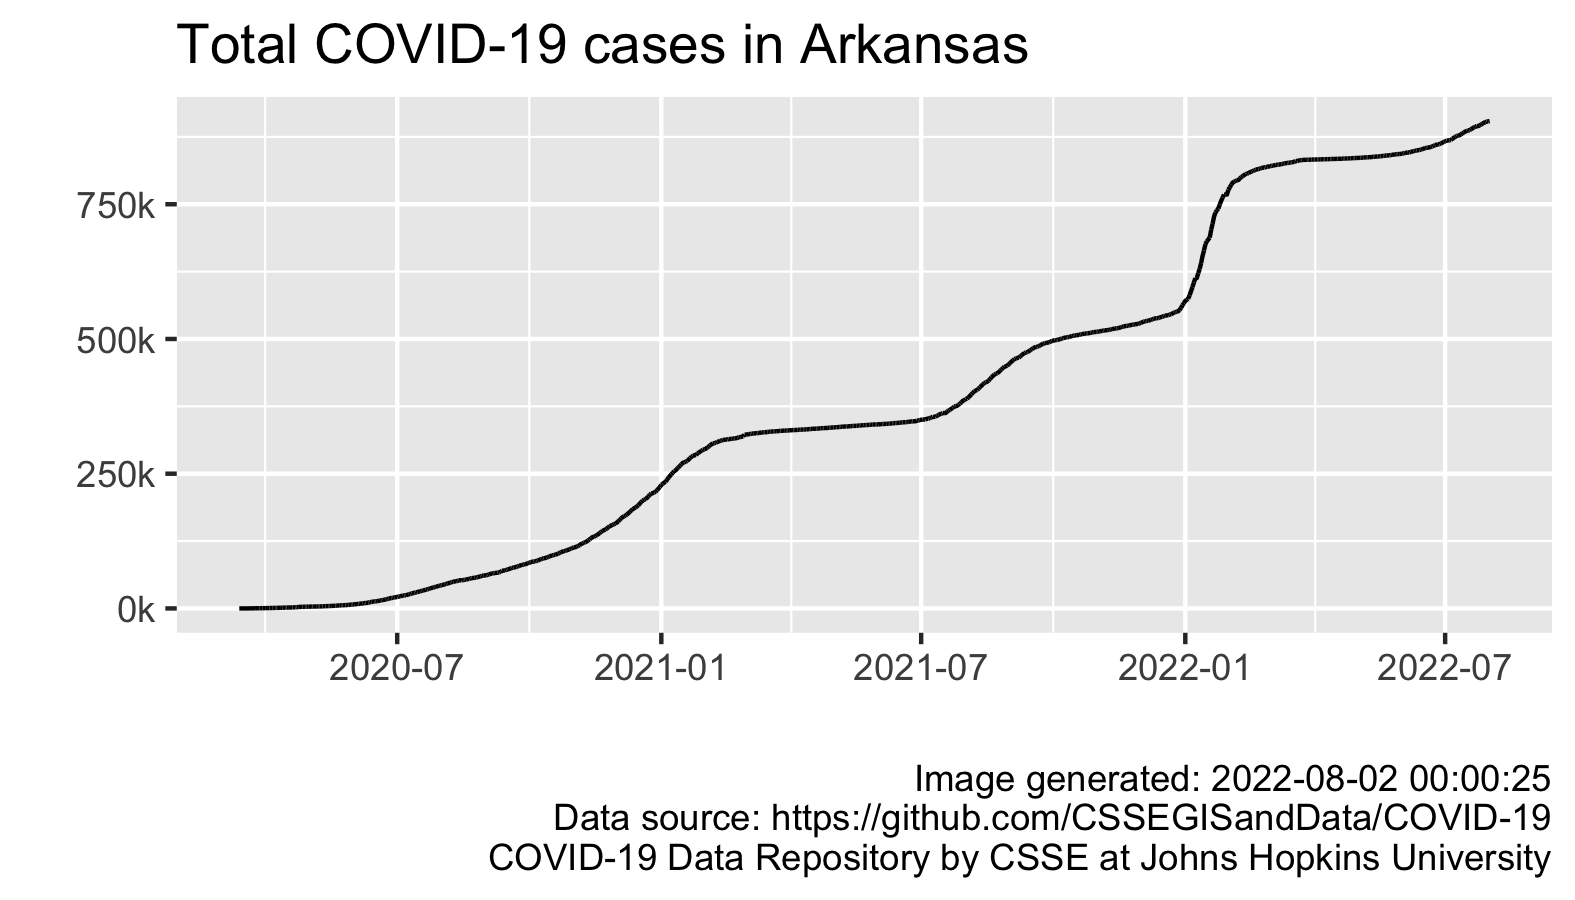 Total COVID-19 Cases in Arkansas